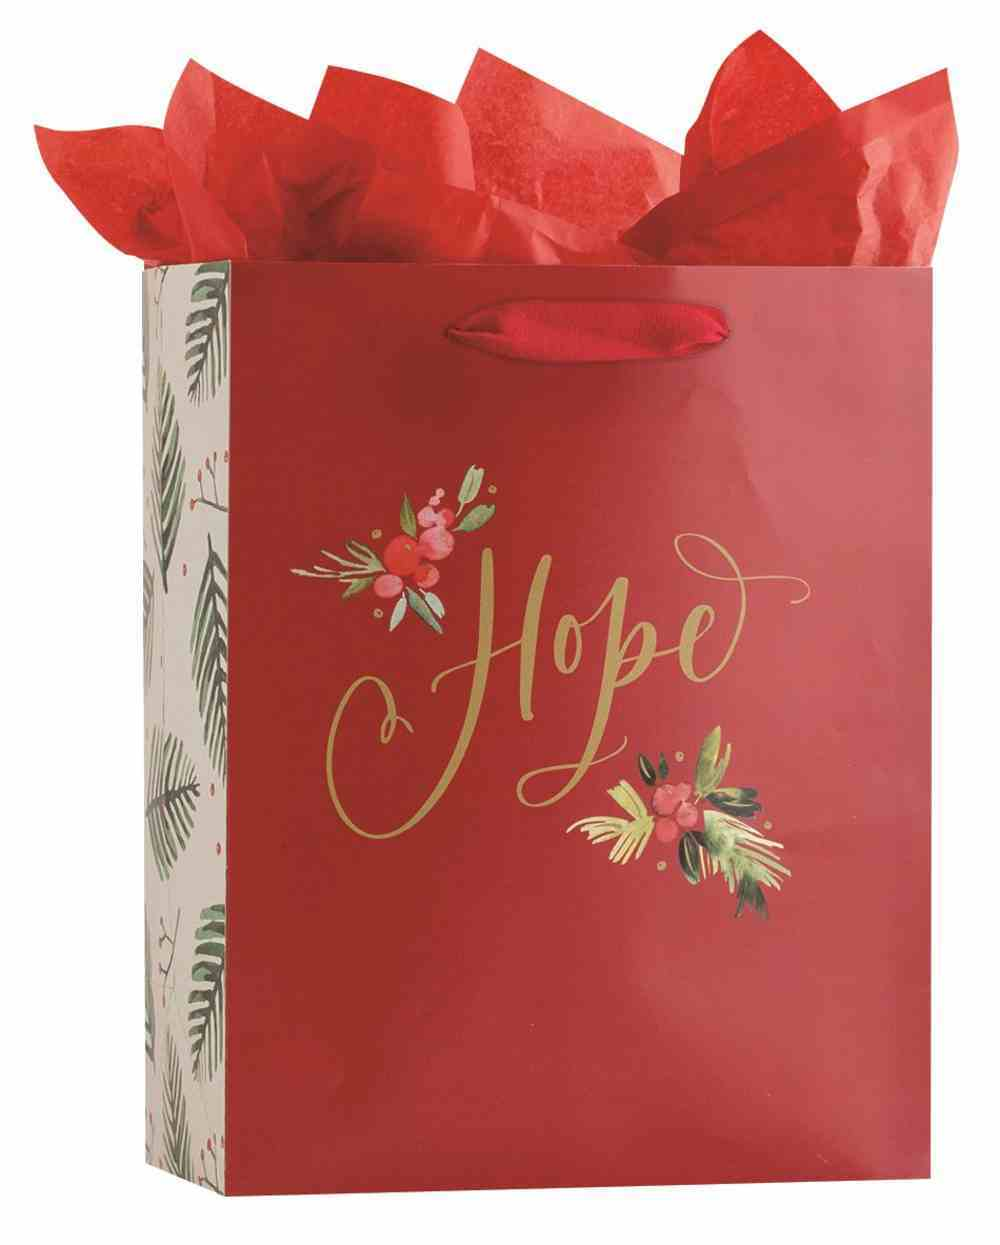 Christmas Gift Bag Large: Hope, Red With Flowers (Romans 15:13 KJV) (Incl Two Sheets Of Tissue Paper) Stationery